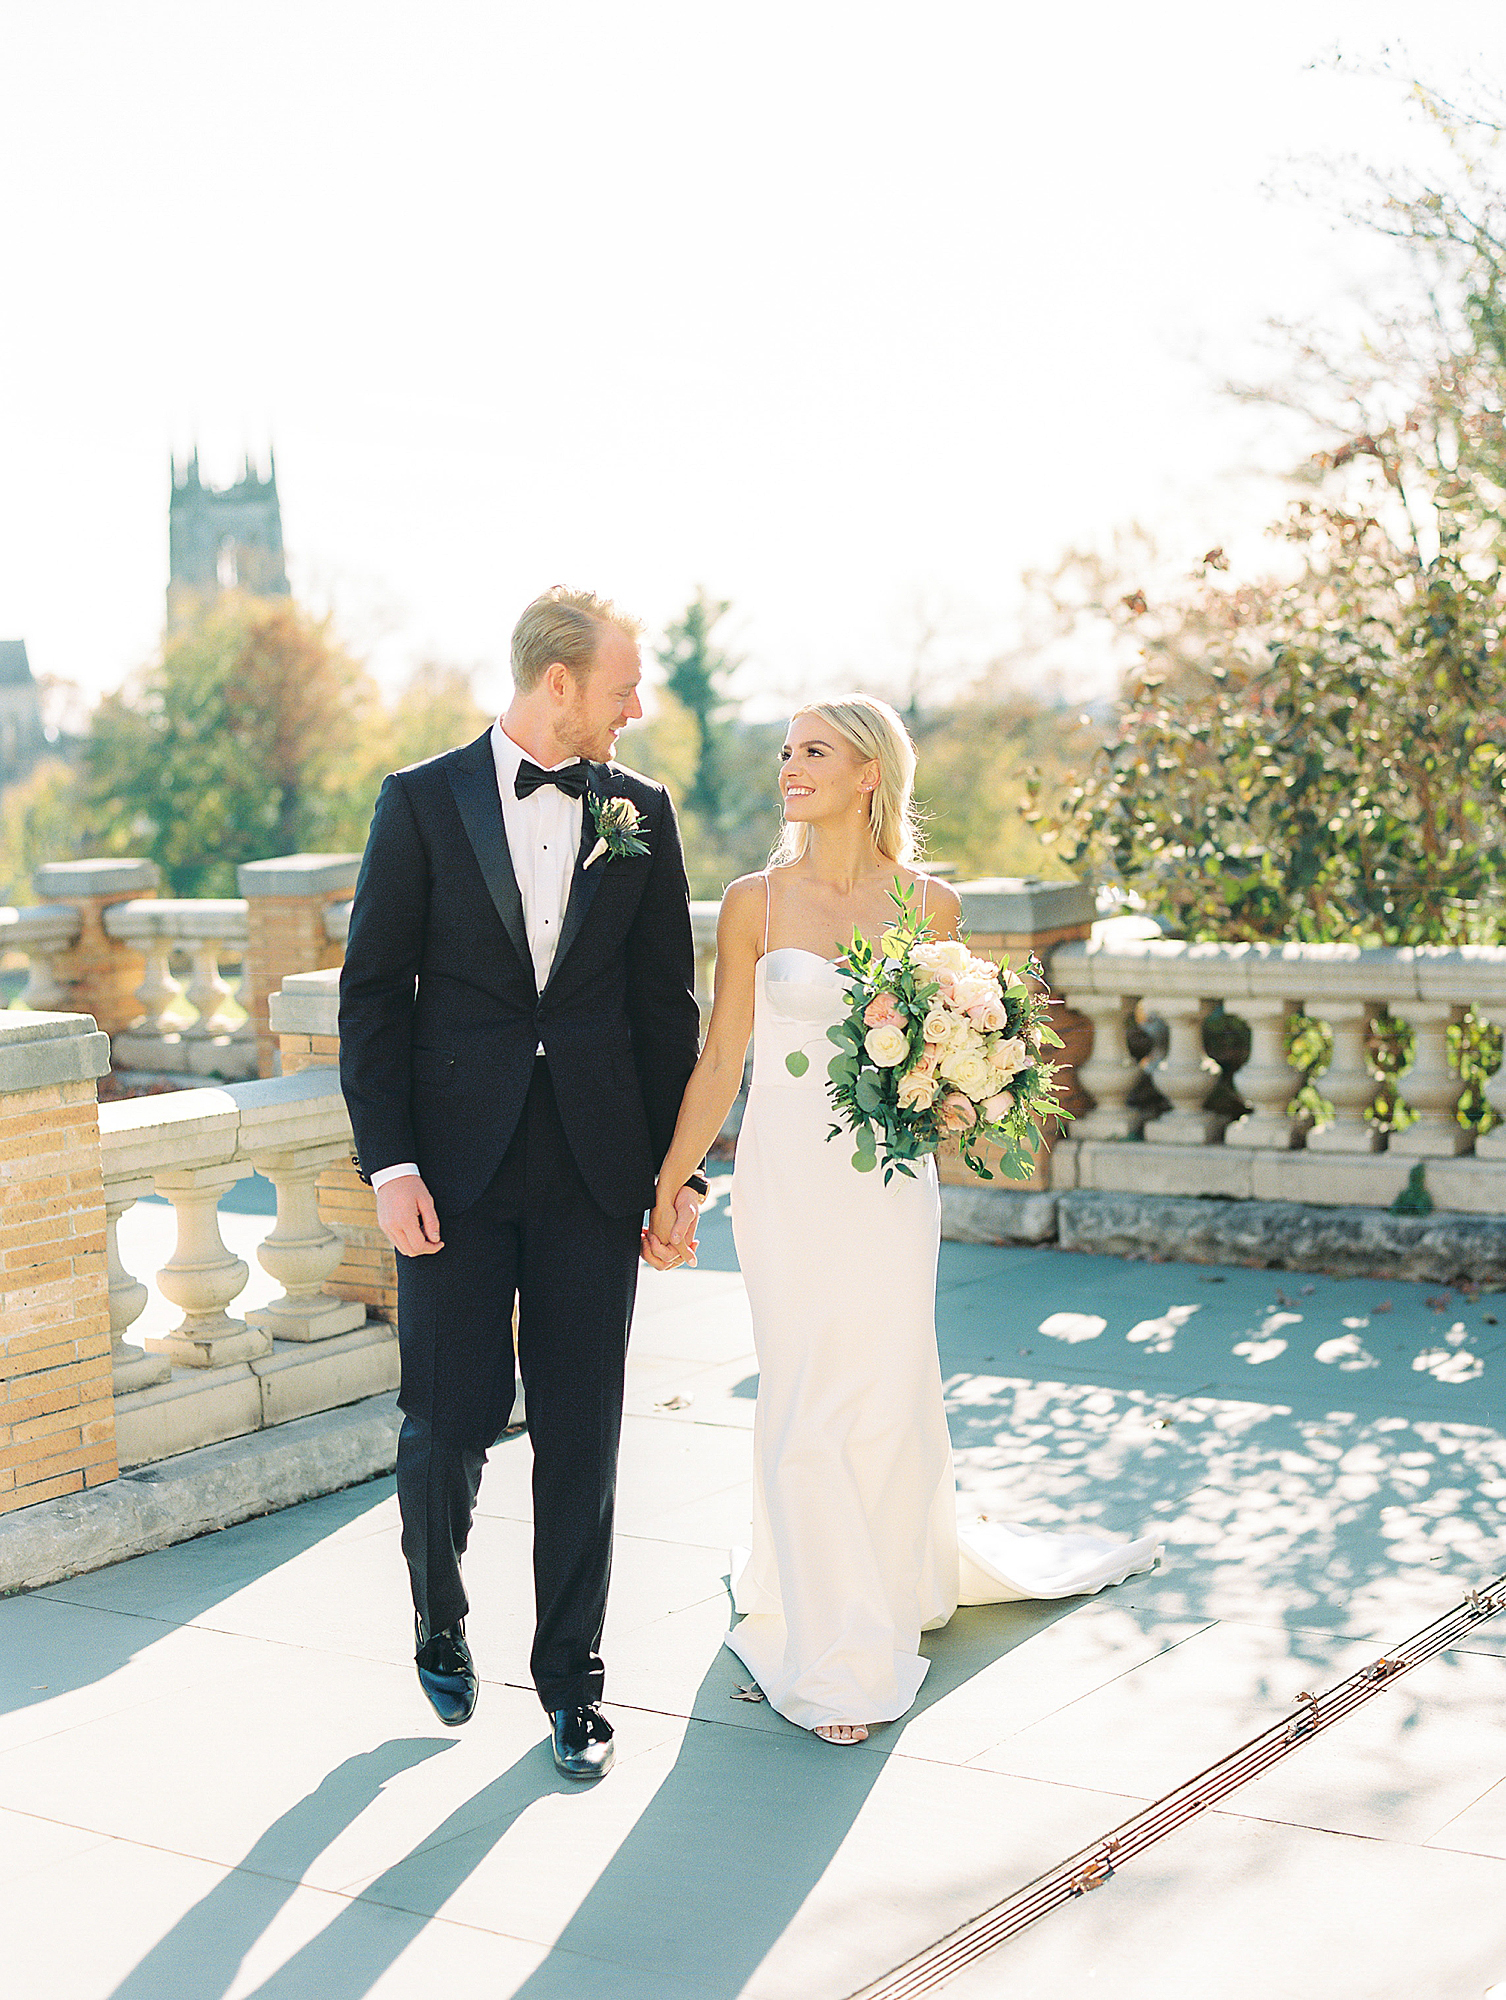 Film Wedding Photography at Cairnwood Estate by Magdalena Studios 0021 1